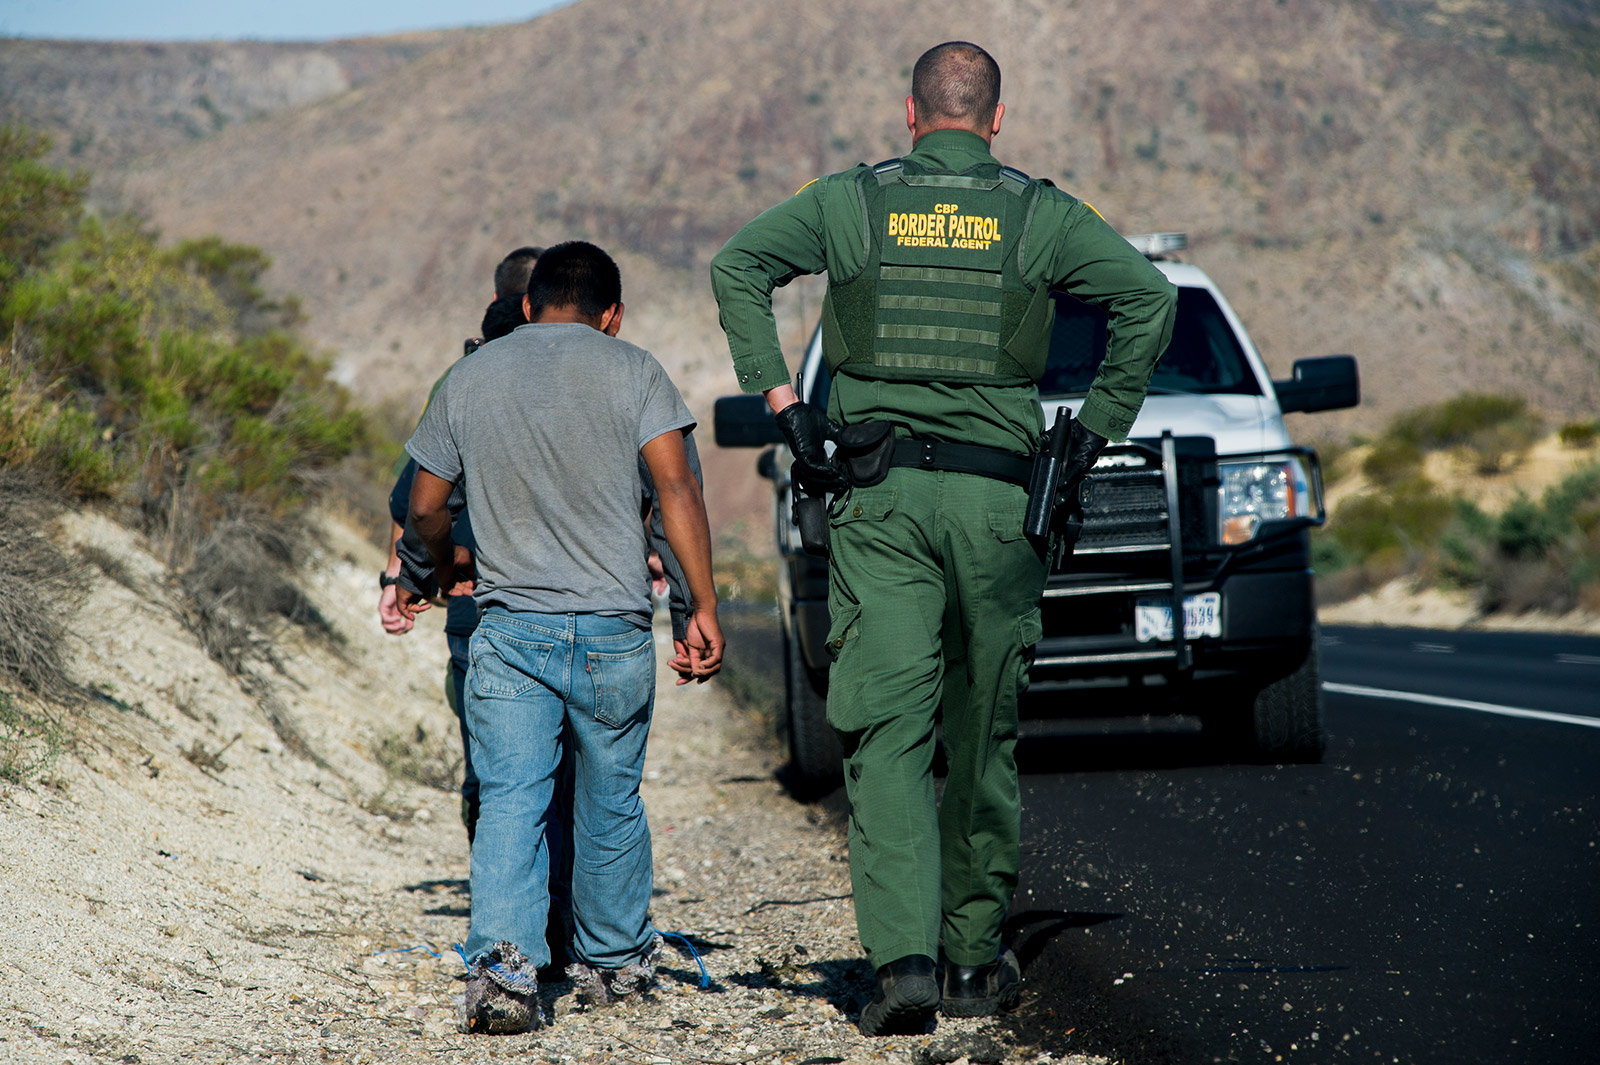 A Border Patrol agent detains three men along Interstate 8 near the U.S.-Mexico border in eastern San Diego County on Sept. 5, 2017. The men are suspected of entering the U.S. illegally and were stopped when agents saw them entering a vehicle near the border. <em>(Brandon Quester/inewsource)</em>